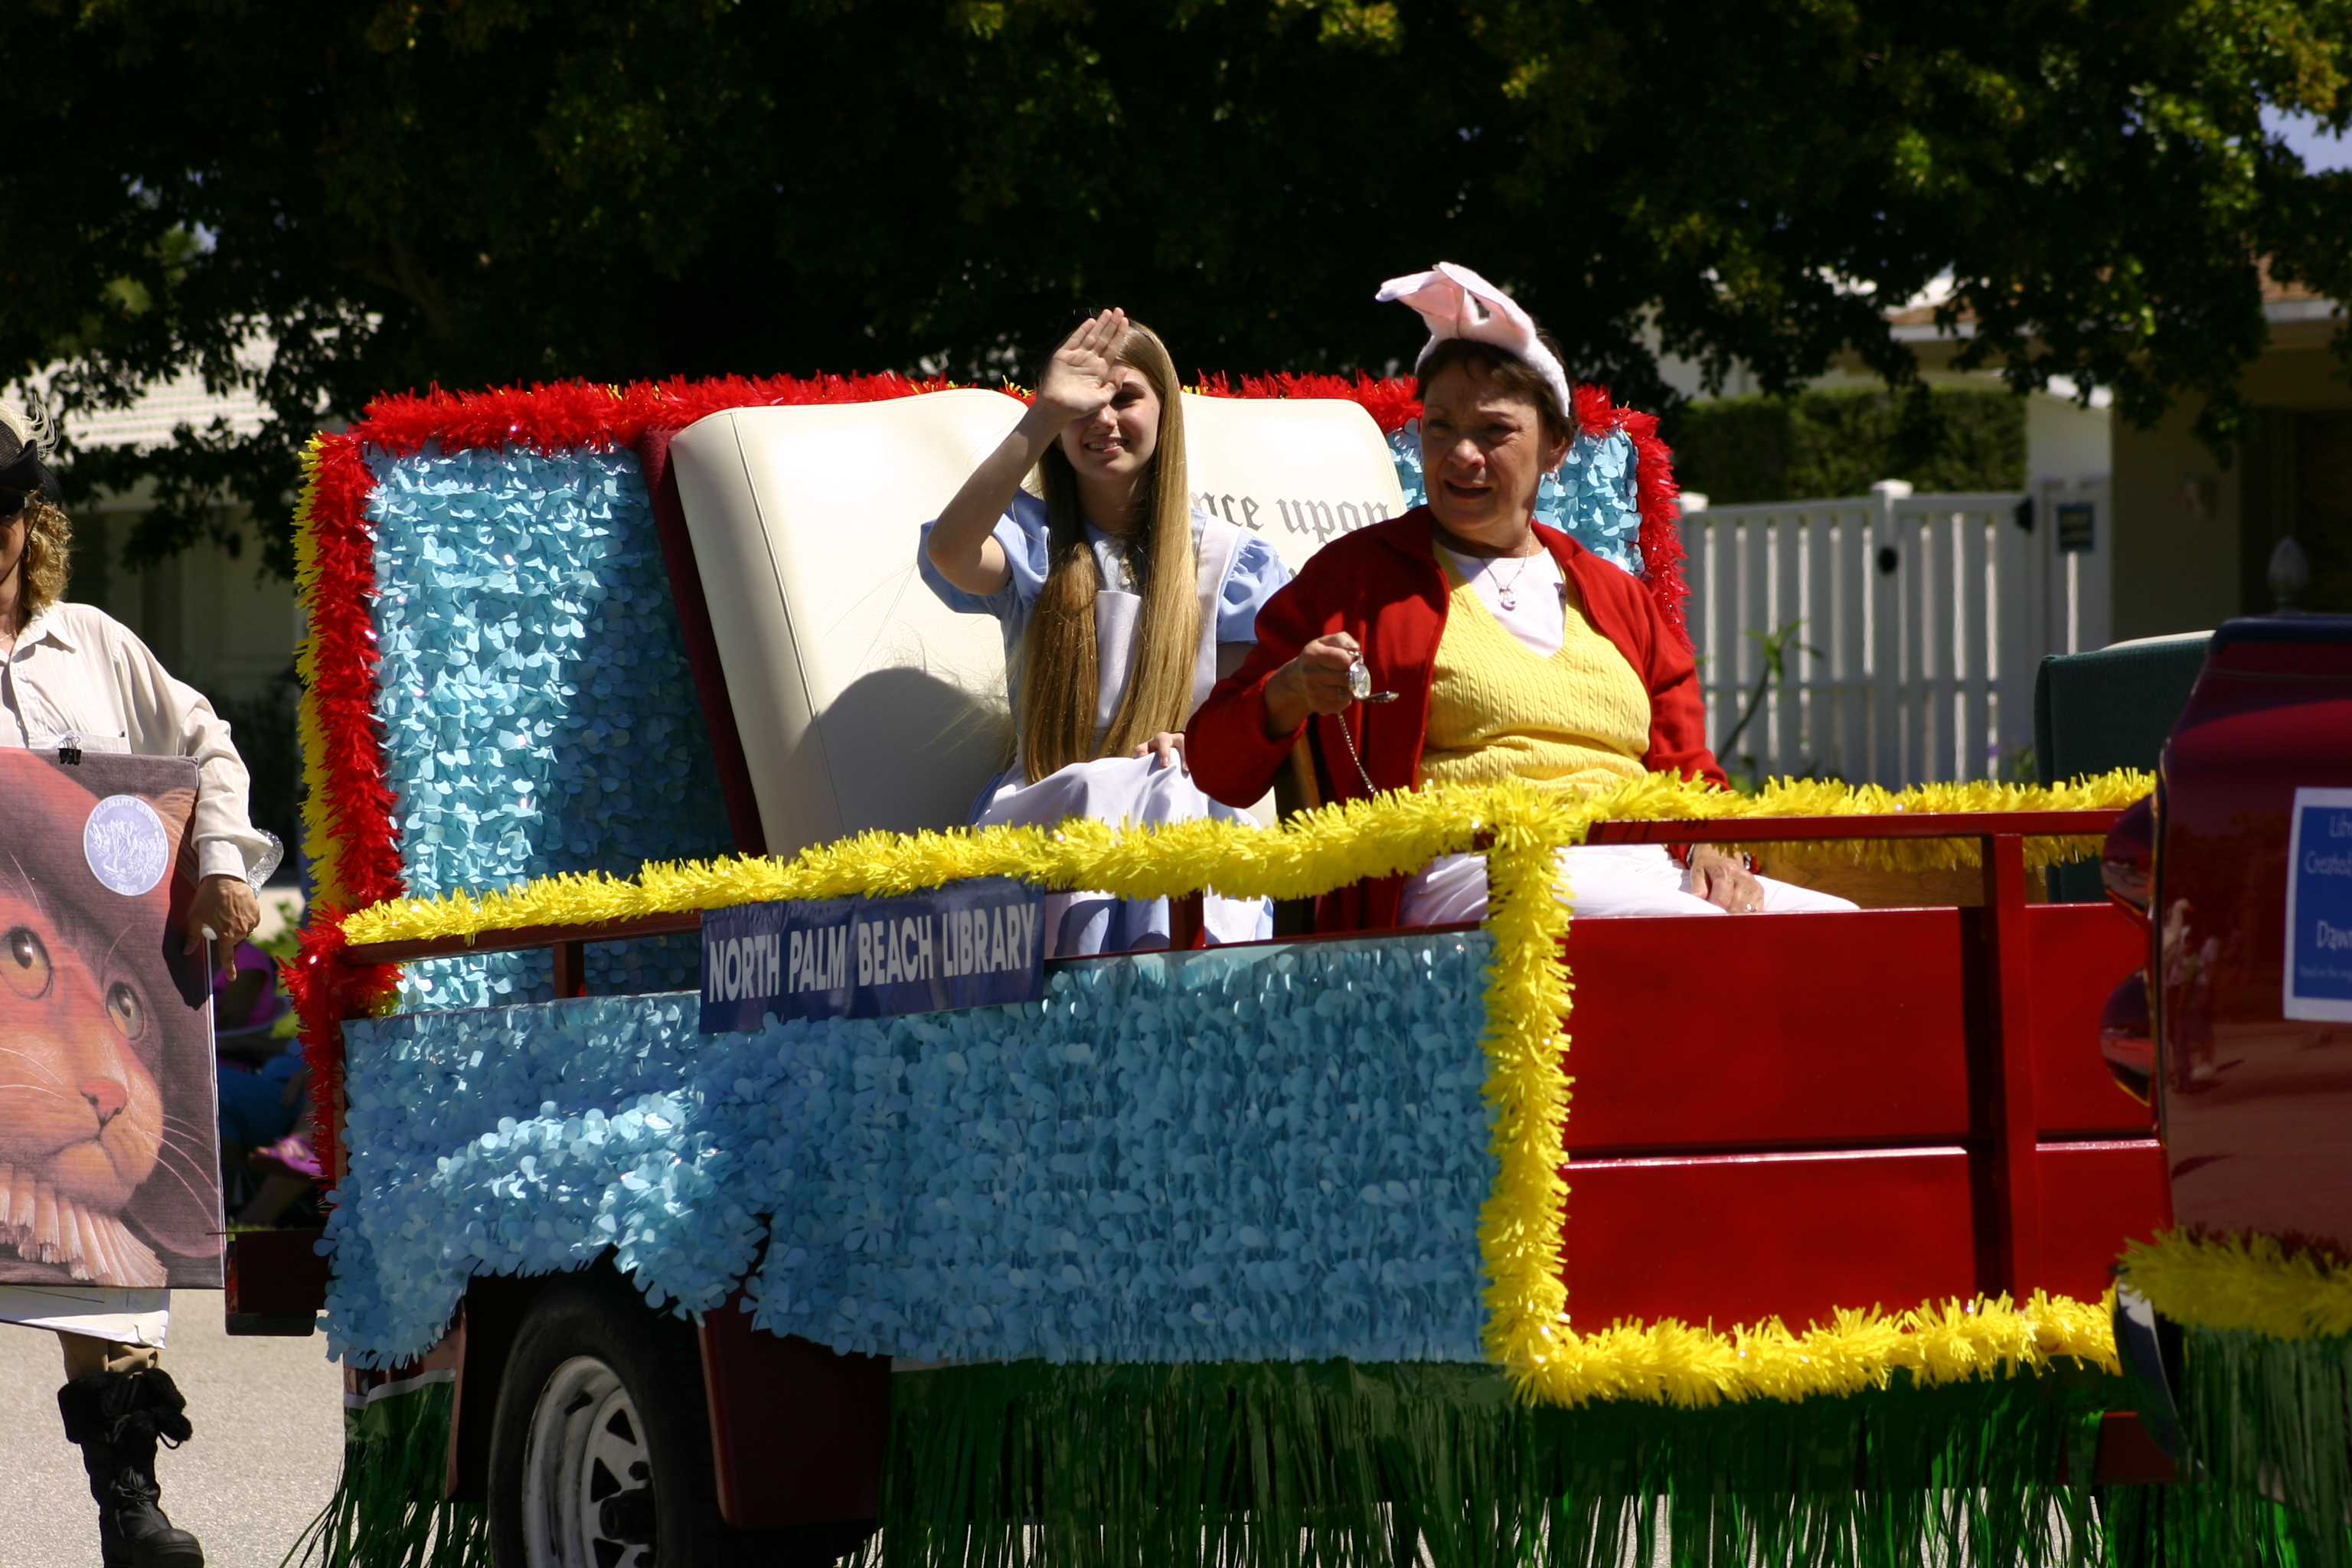 Alice and the White Rabbit sit on the Library's Float during the parade